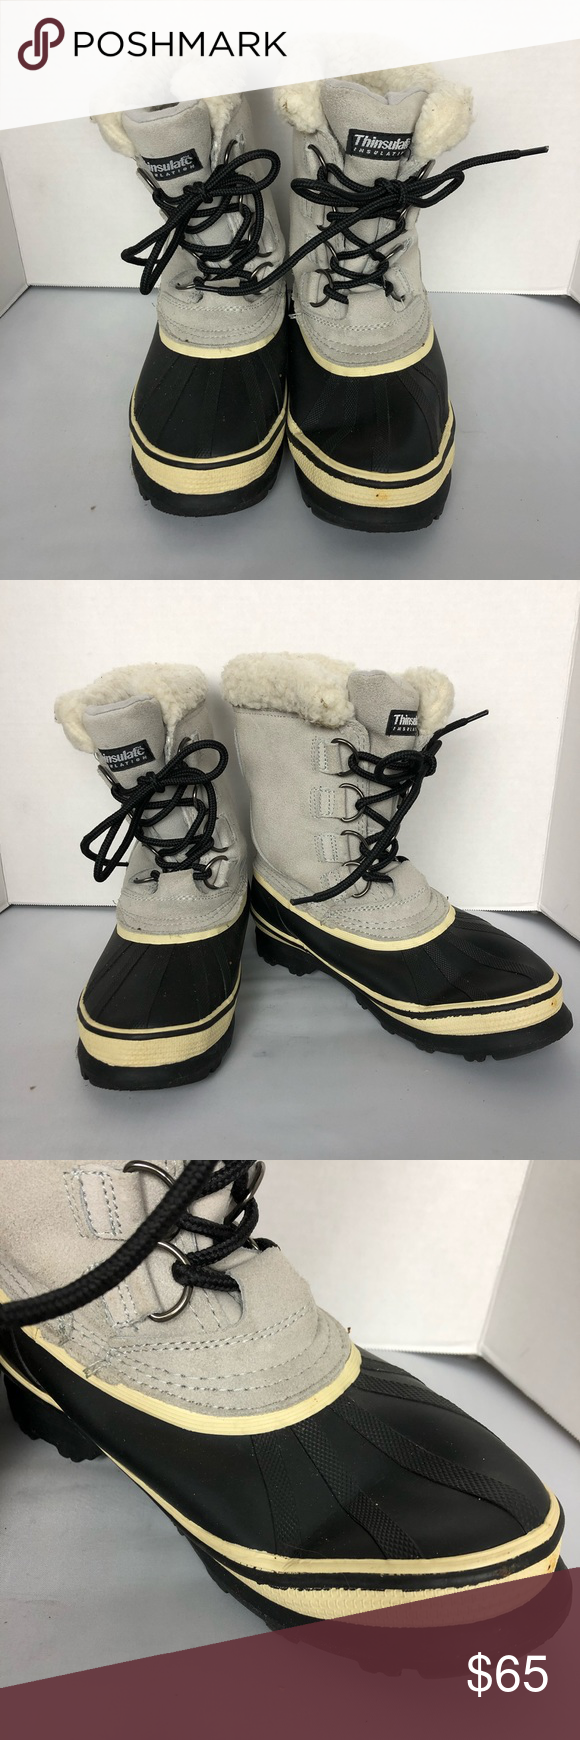 e7ff990f158 Ozark Trail Snow Boots used in good condition. One boot is bended due to  storage 455 Ozark Trail Shoes Winter   Rain Boots